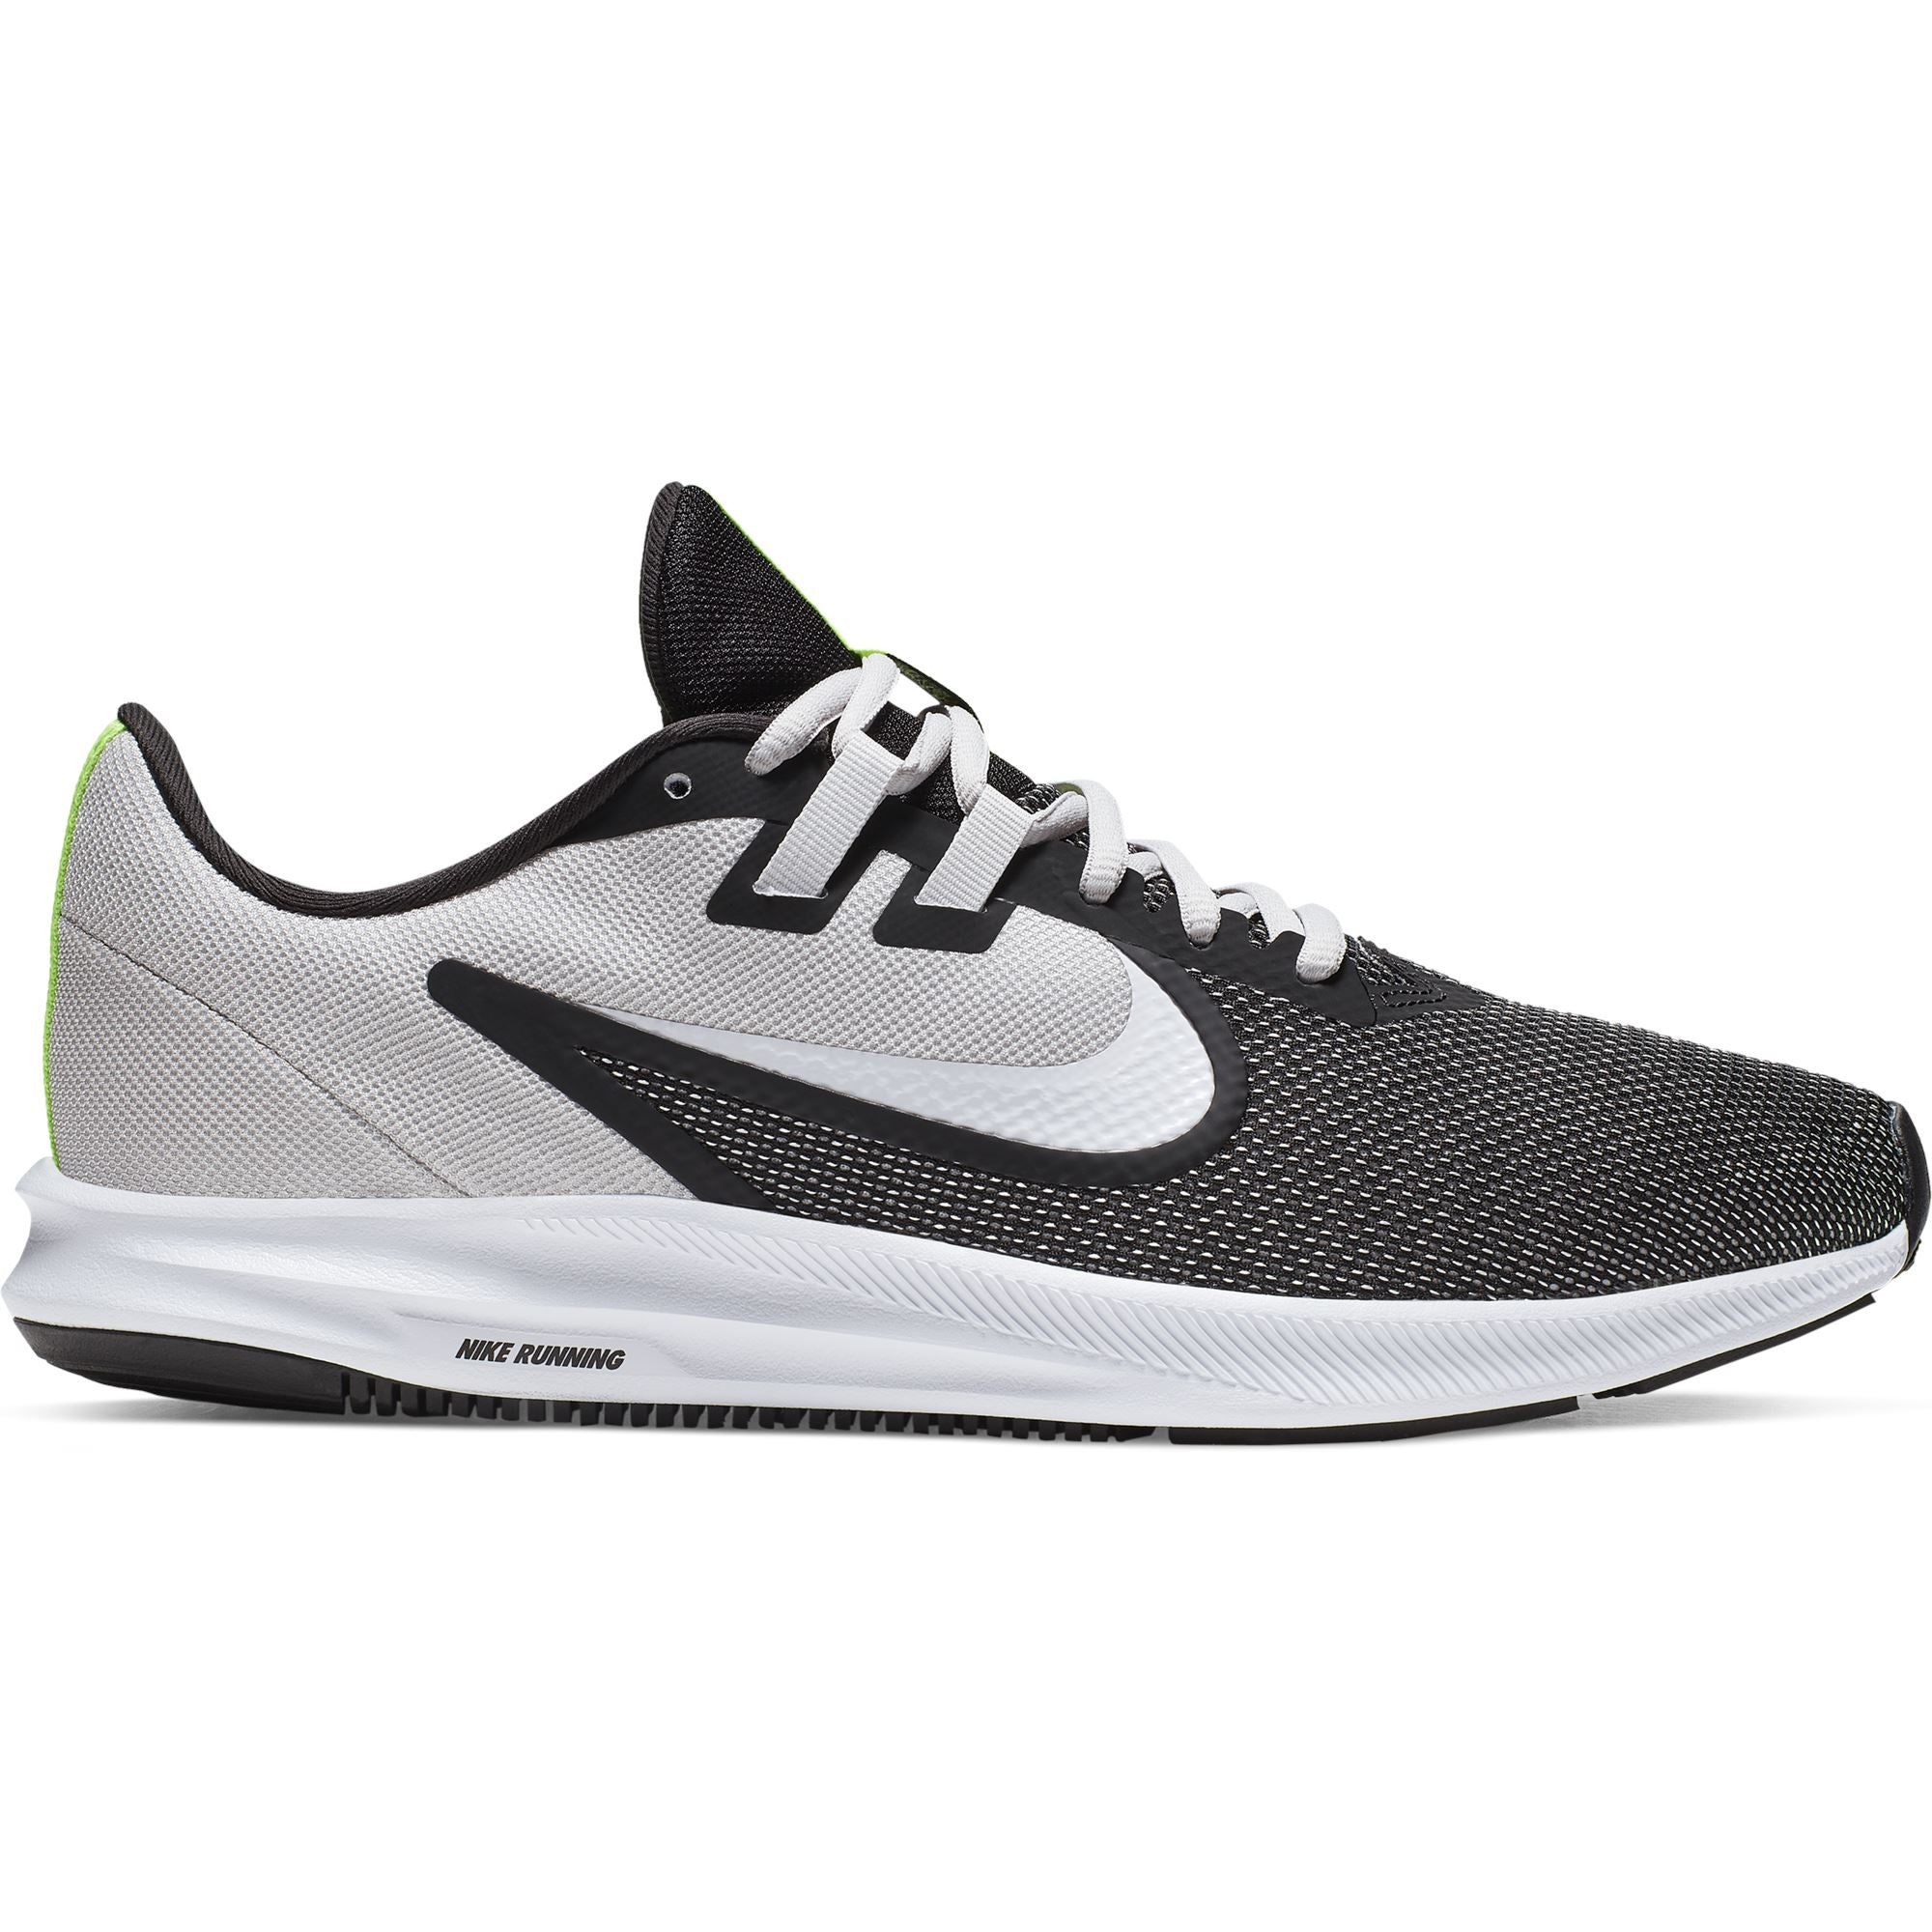 Nike Mens Downshifter 9 - Black/White-Vast Grey-Electric Green Q3NIKE Nike